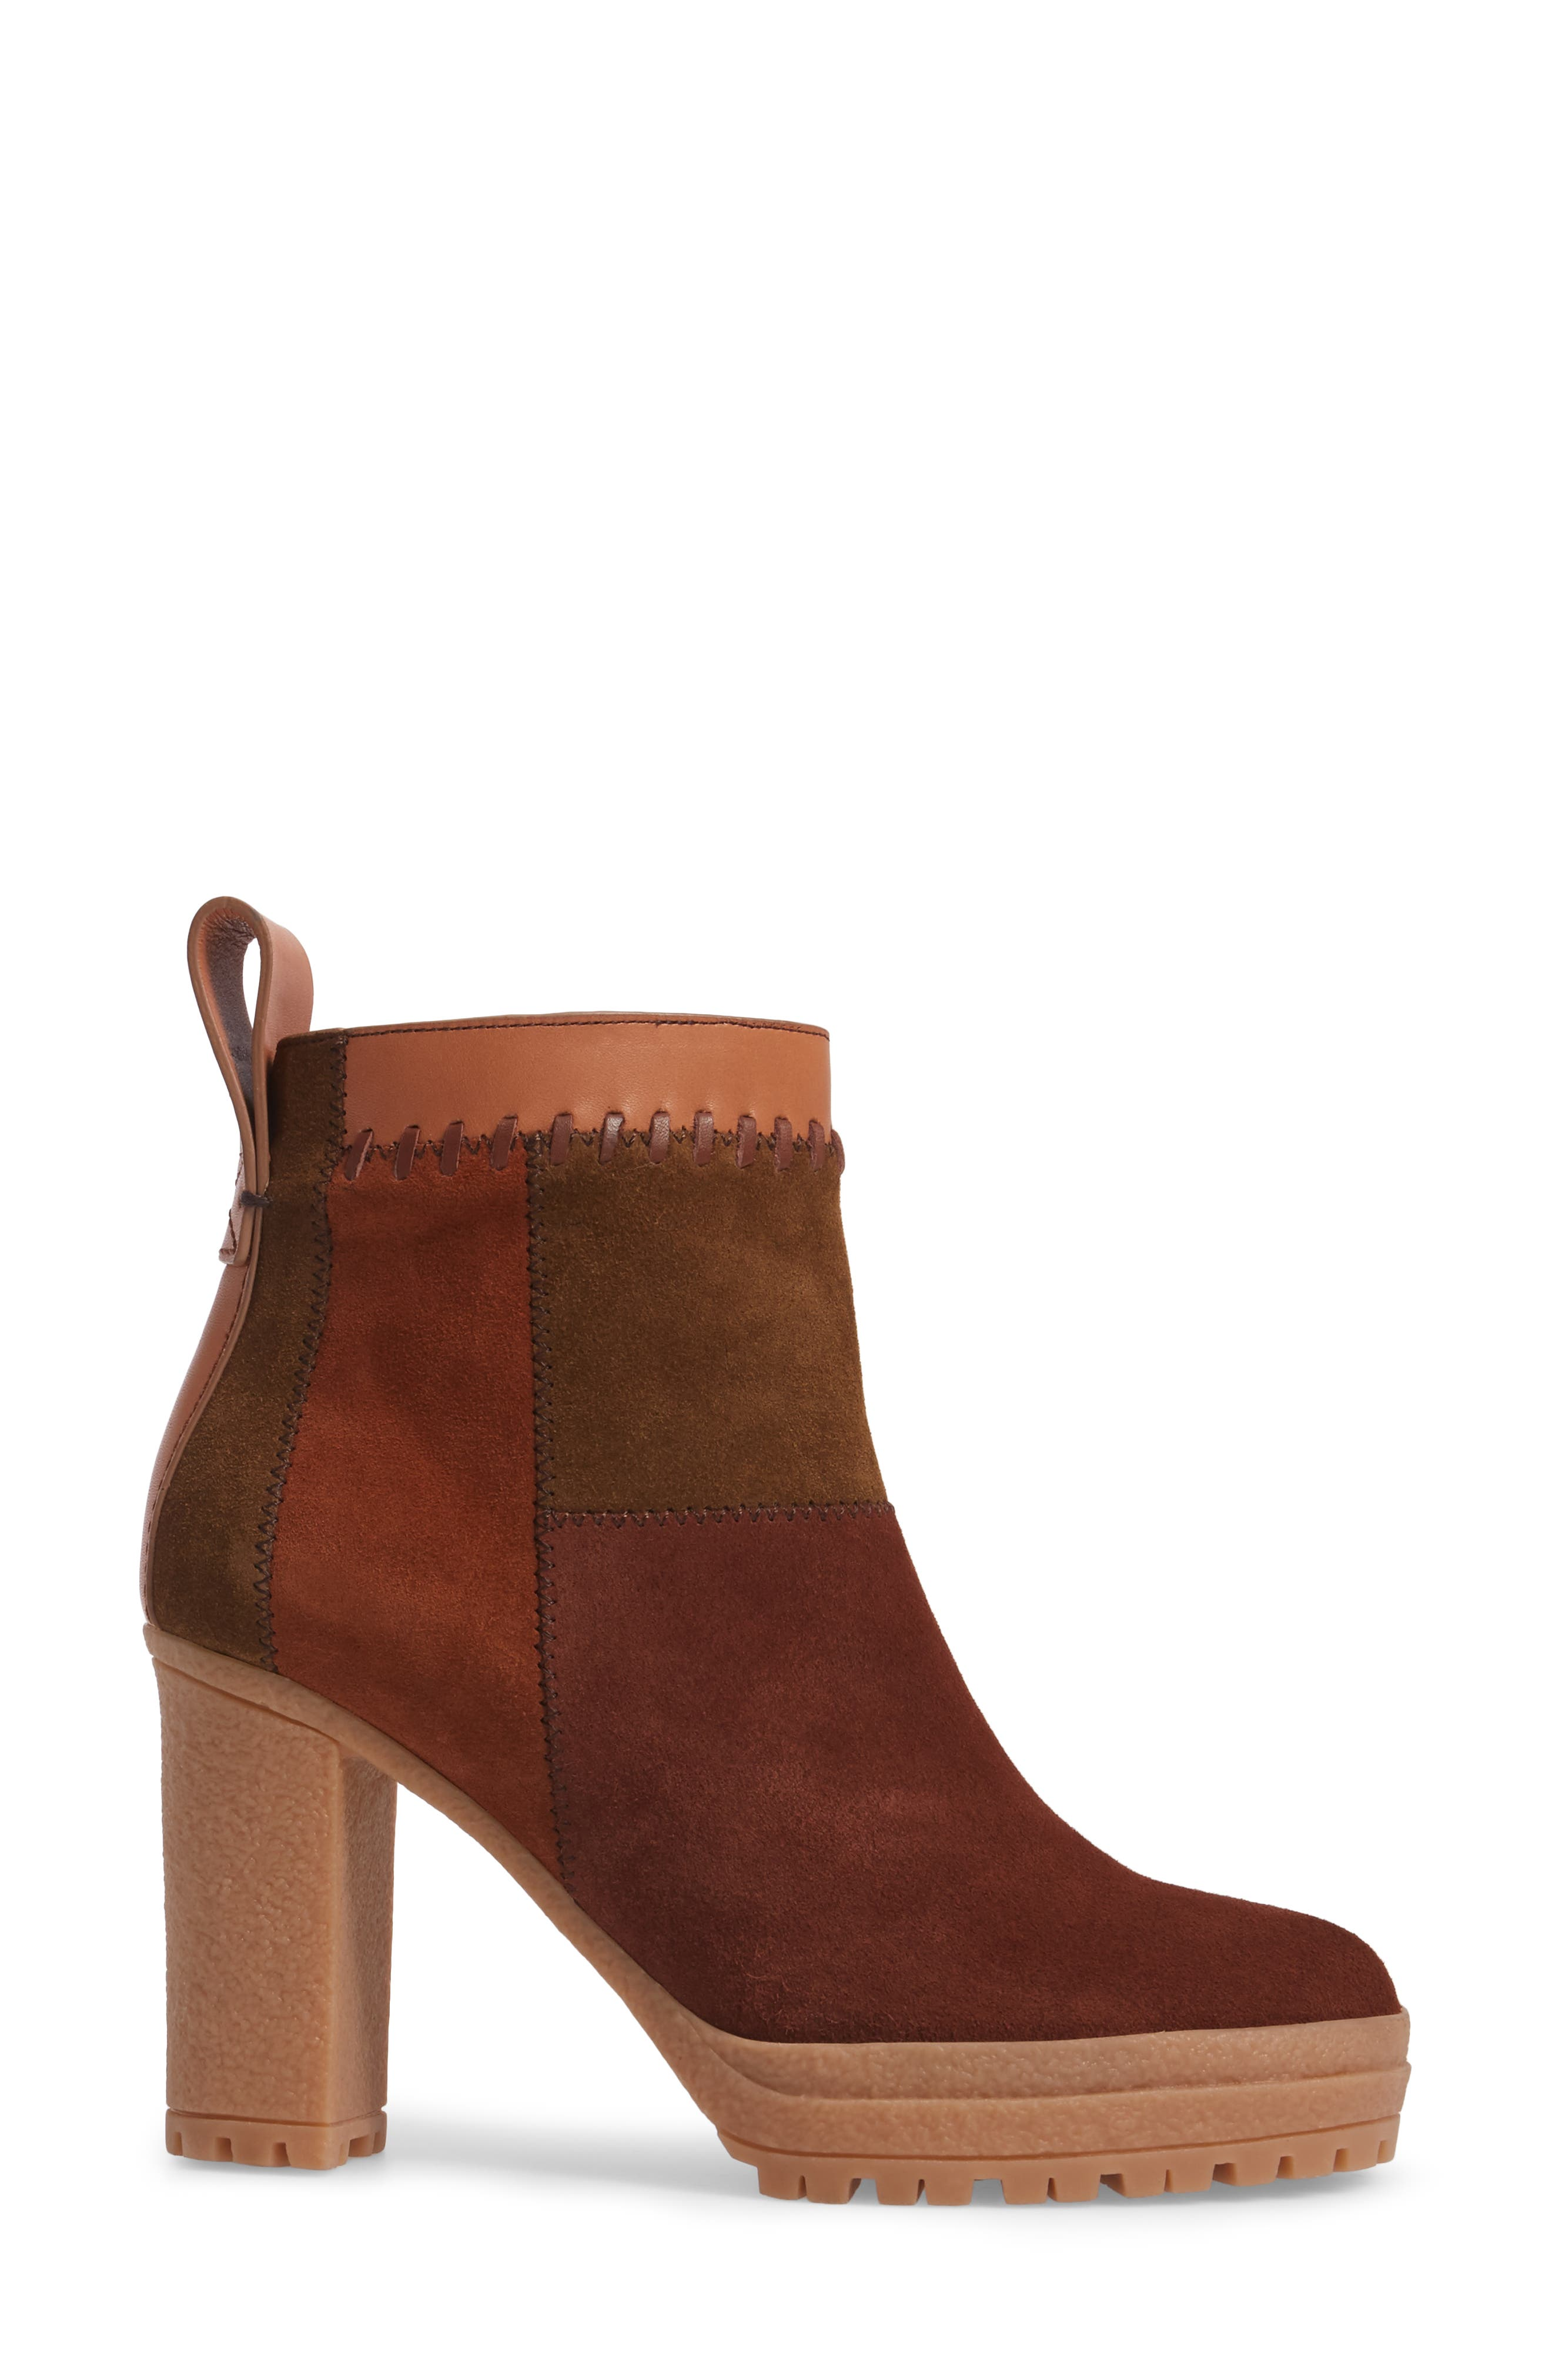 Polina Patchwork Bootie,                             Alternate thumbnail 3, color,                             210